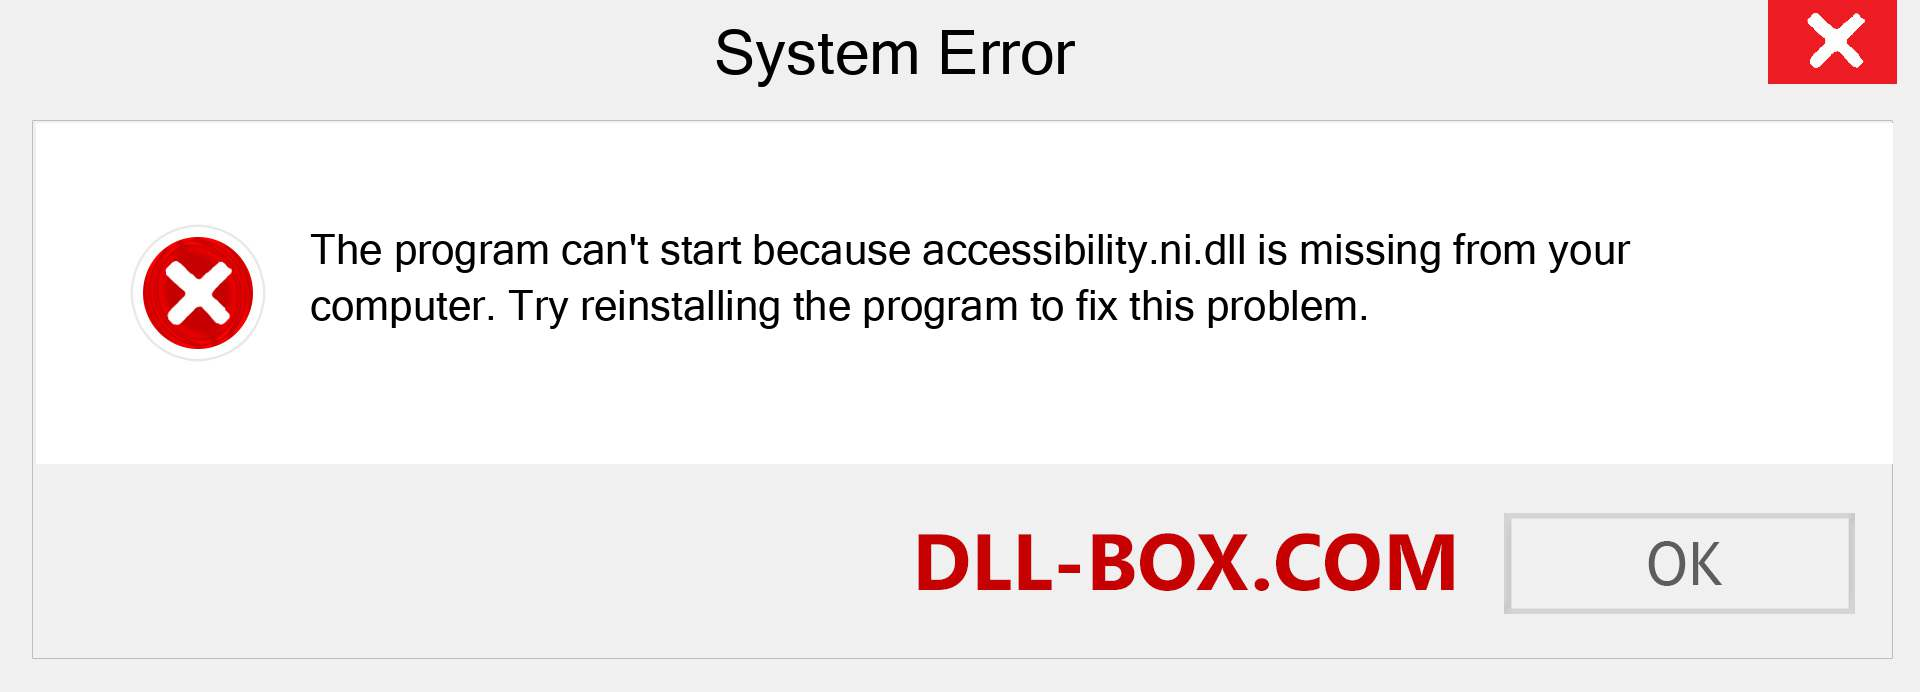 accessibility.ni.dll file is missing?. Download for Windows 7, 8, 10 - Fix  accessibility.ni dll Missing Error on Windows, photos, images